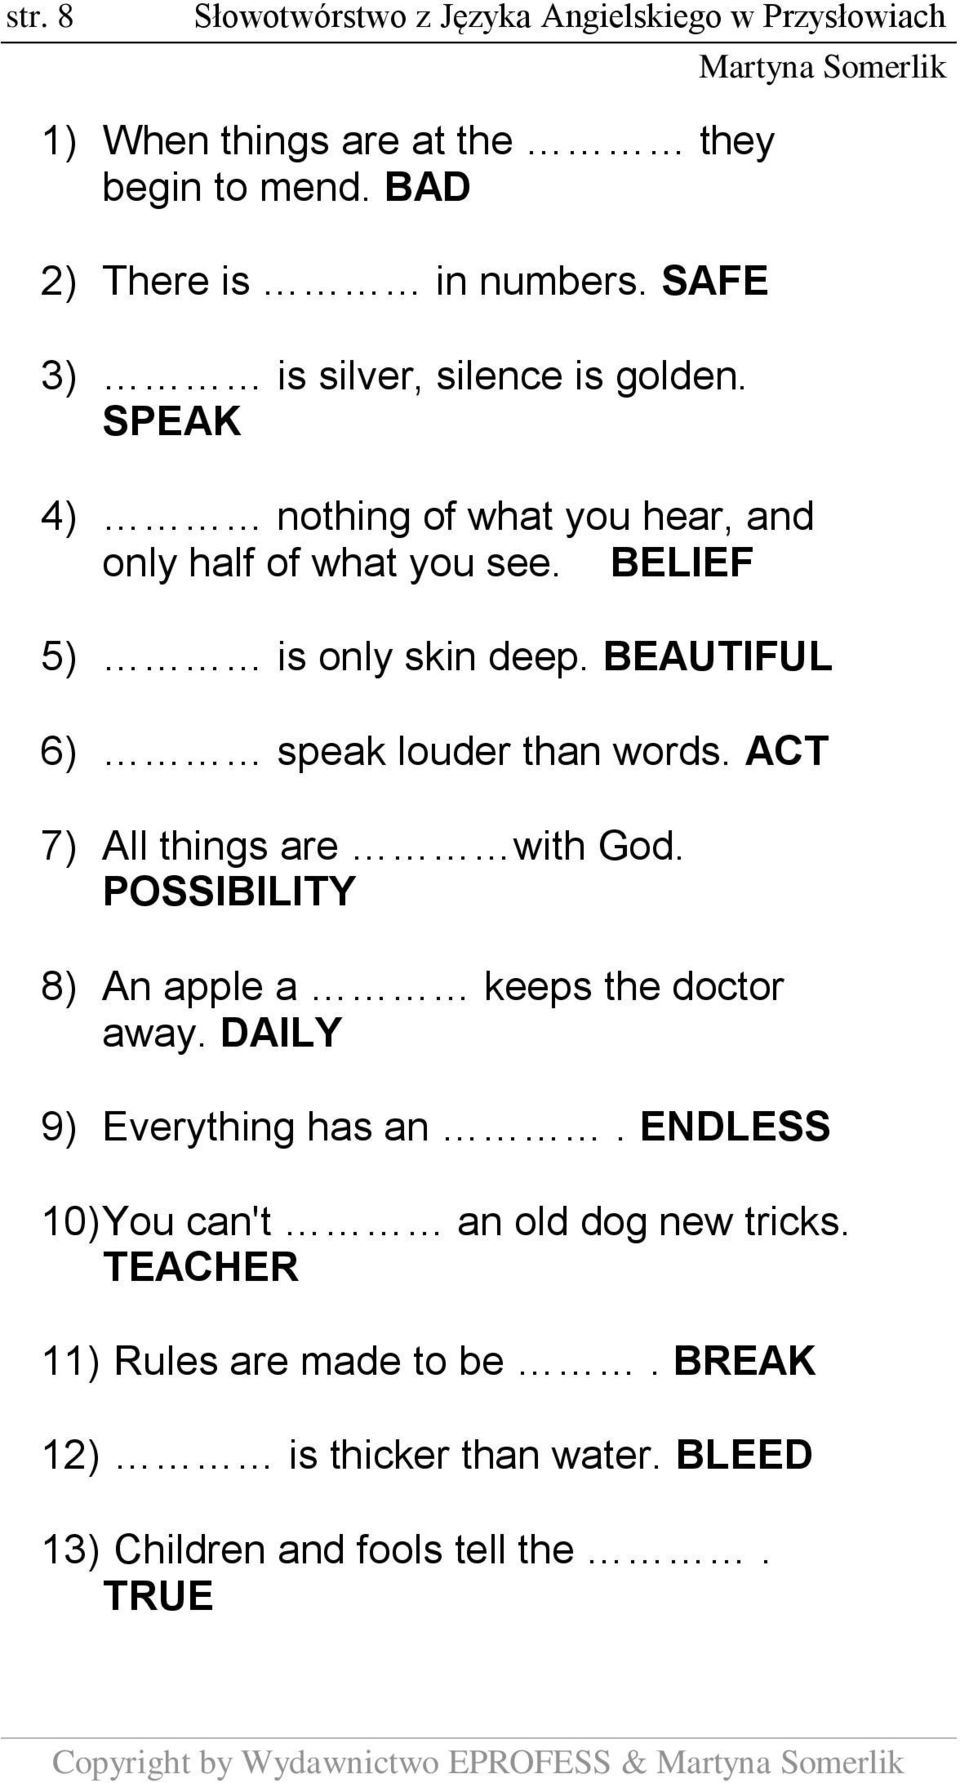 BEAUTIFUL 6) speak louder than words. ACT 7) All things are with God. POSSIBILITY 8) An apple a keeps the doctor away. DAILY 9) Everything has an.